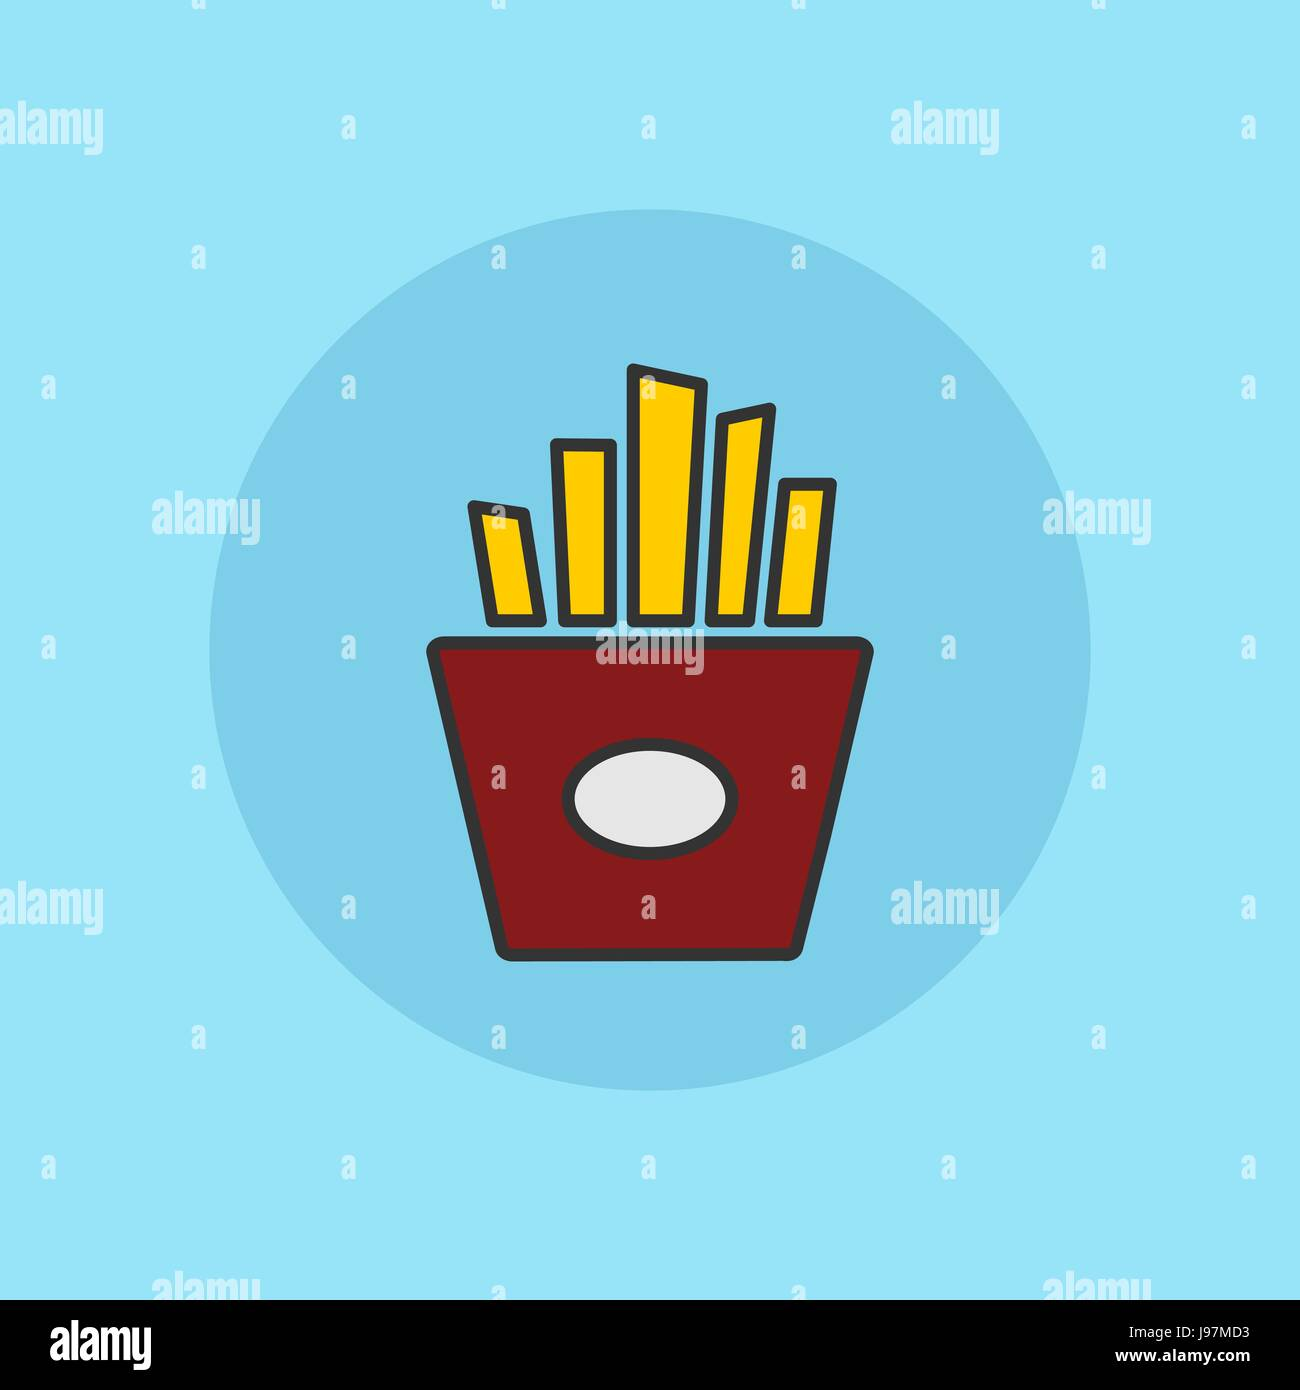 Fries potatoes simple flat vector illustration icon. - Stock Vector